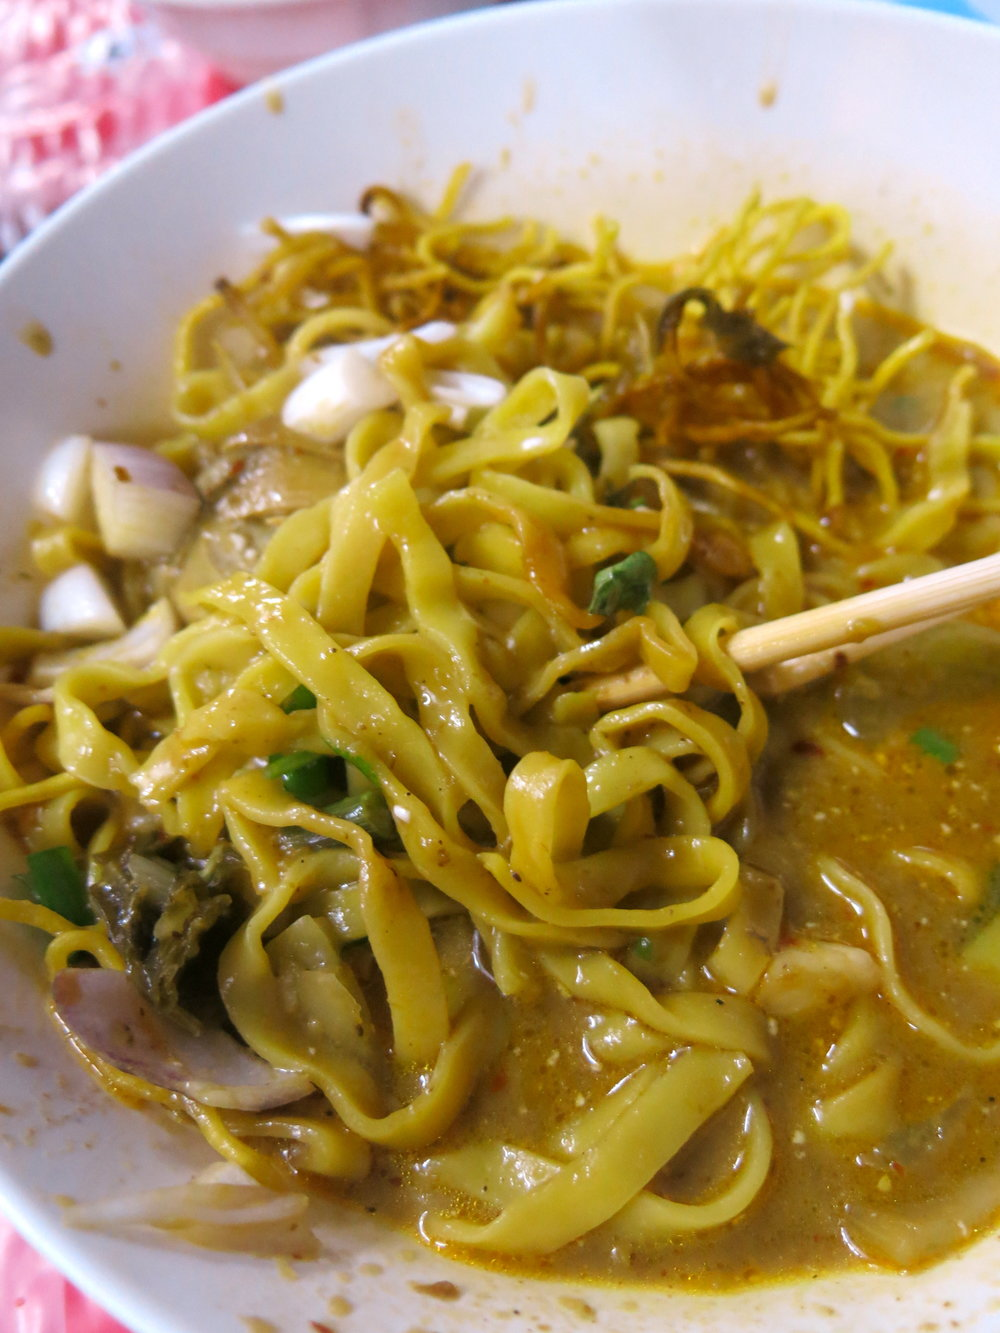 Khao Soi is eaten with both chop-sticks for the noodles and a large spoon for the broth